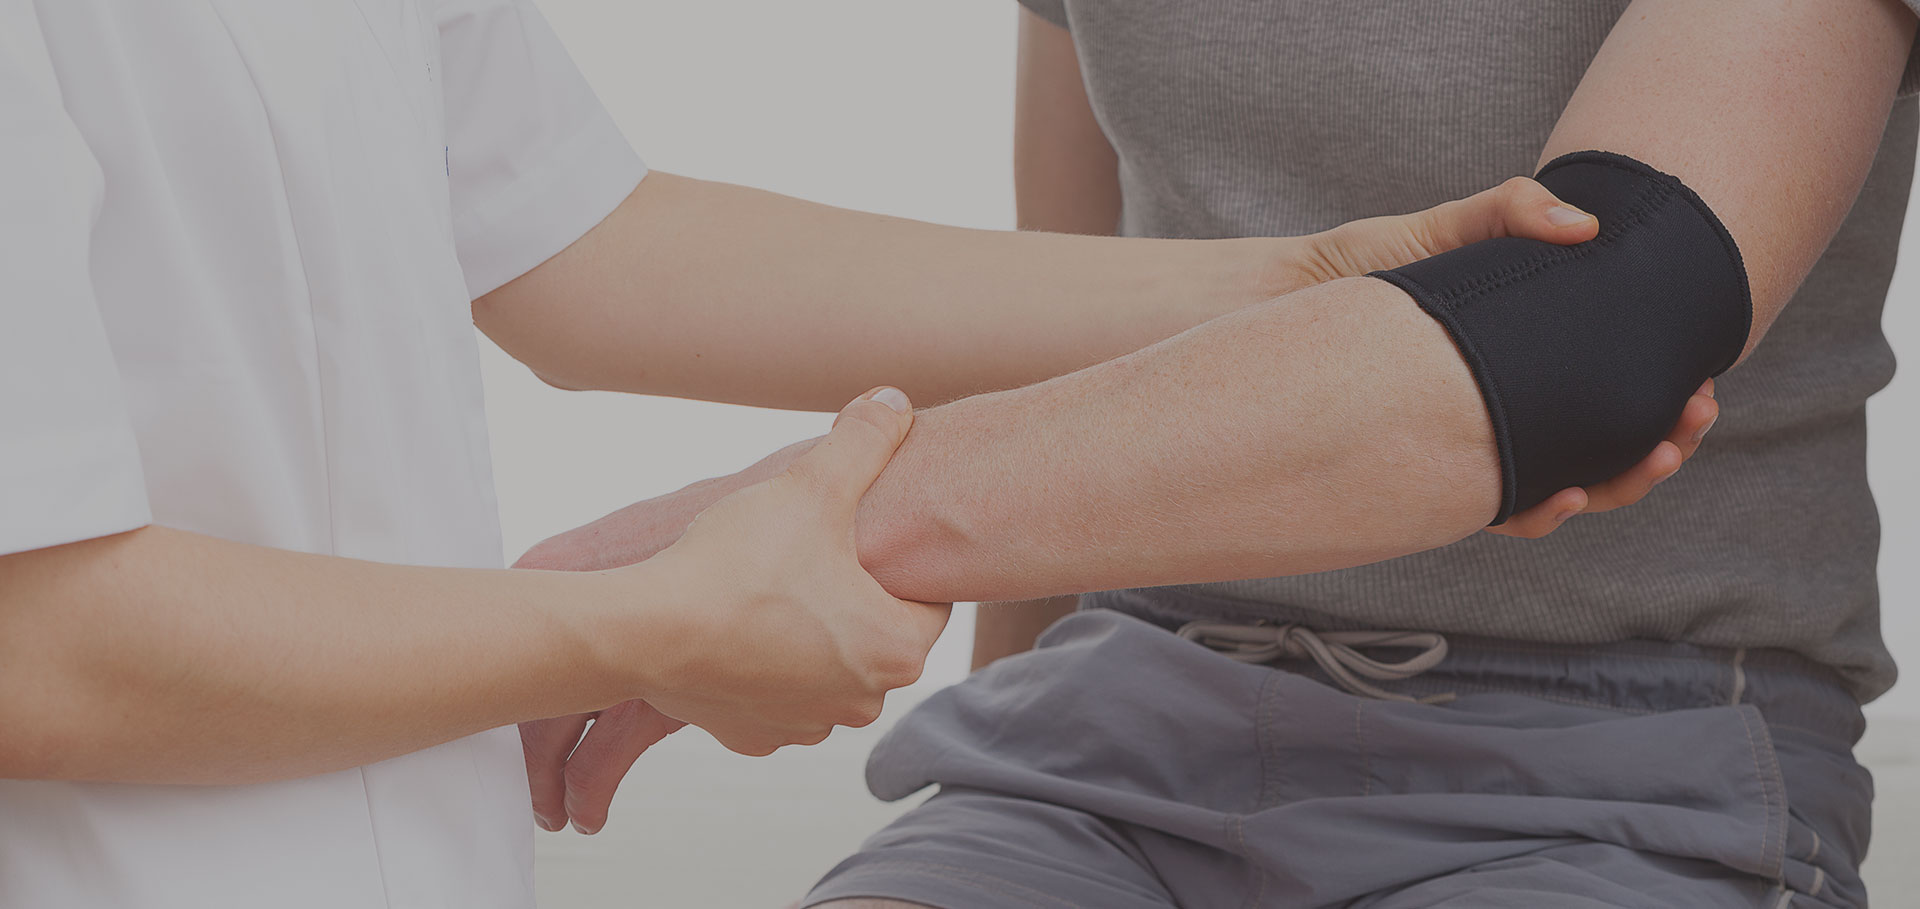 What is a Physical Medicine & Rehabilitation Specialist?